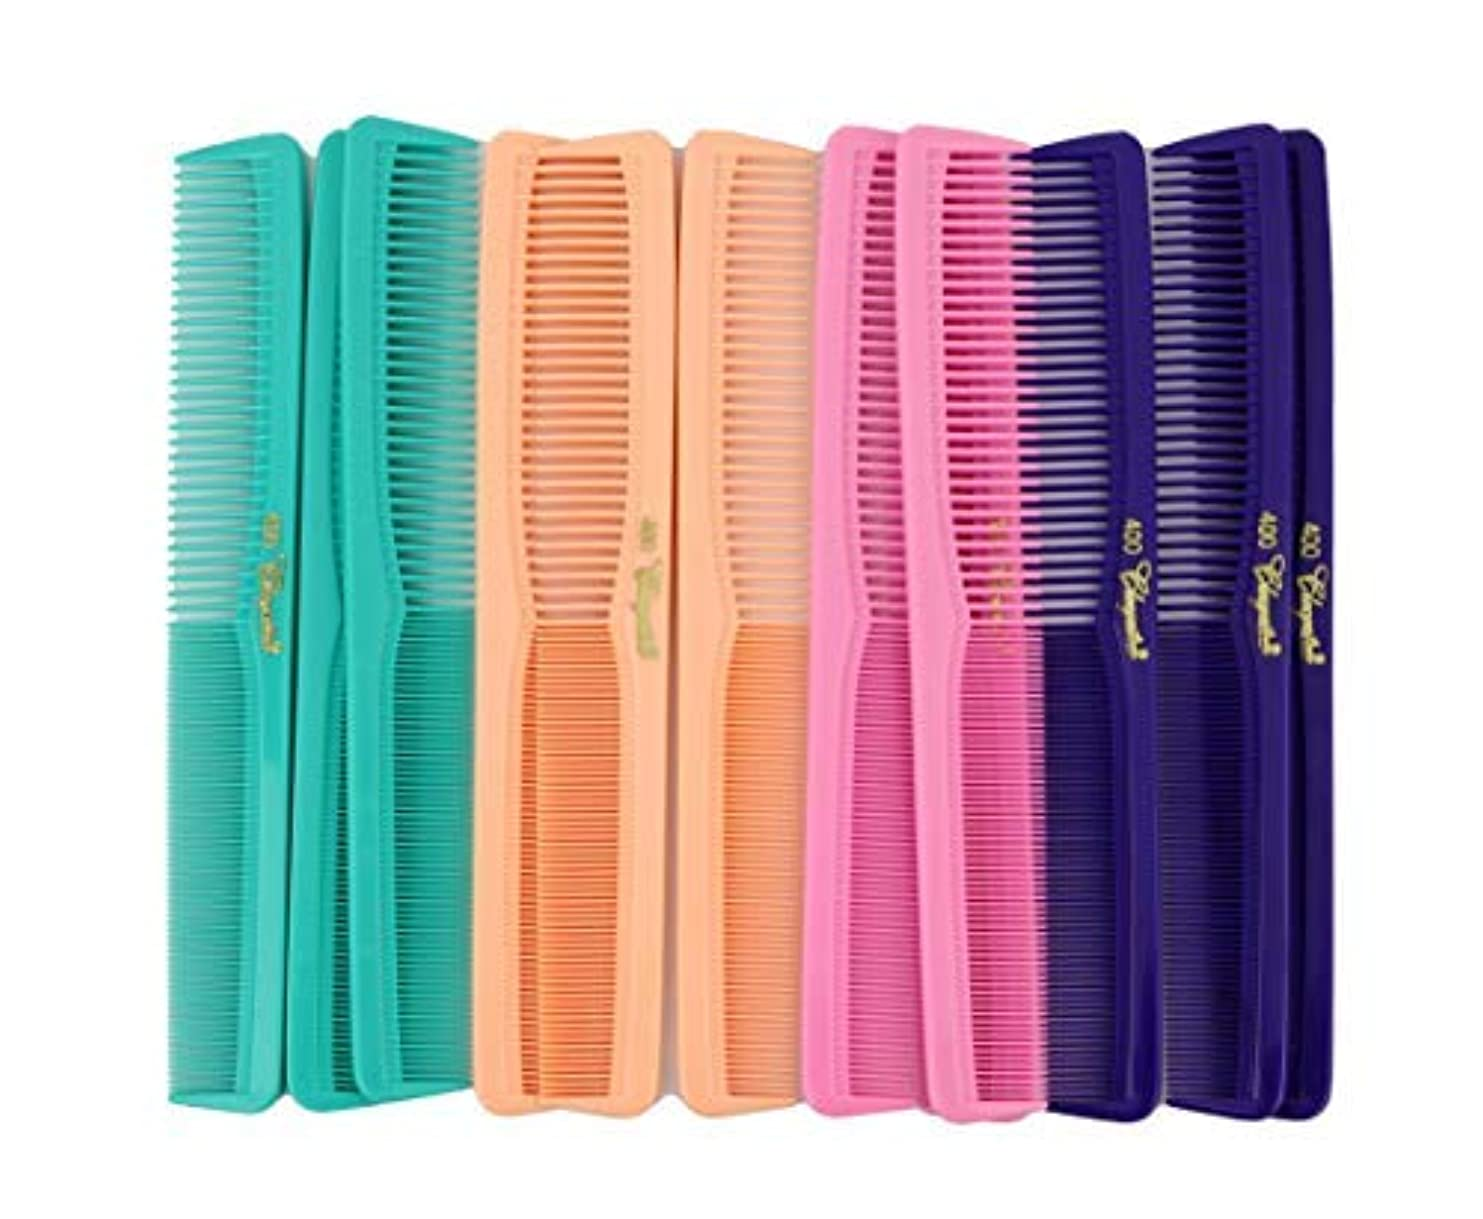 センチメンタル不要アリ7 inch All Purpose Hair Comb. Hair Cutting Combs. Barber's & Hairstylist Combs. Fresh Mix 12 Units. [並行輸入品]